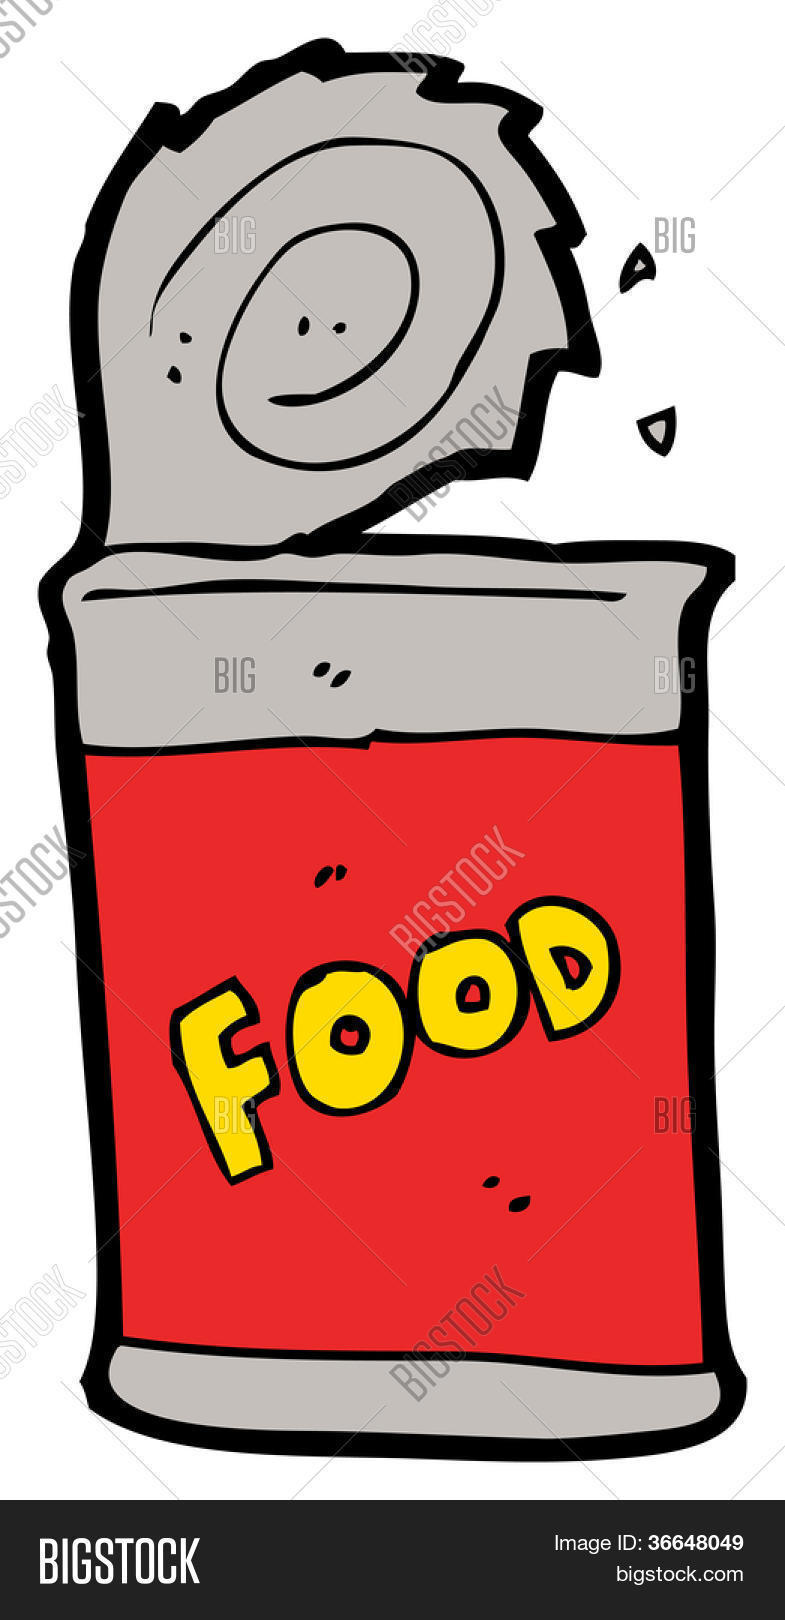 Cartoon Canned Food Image & Photo | Bigstock